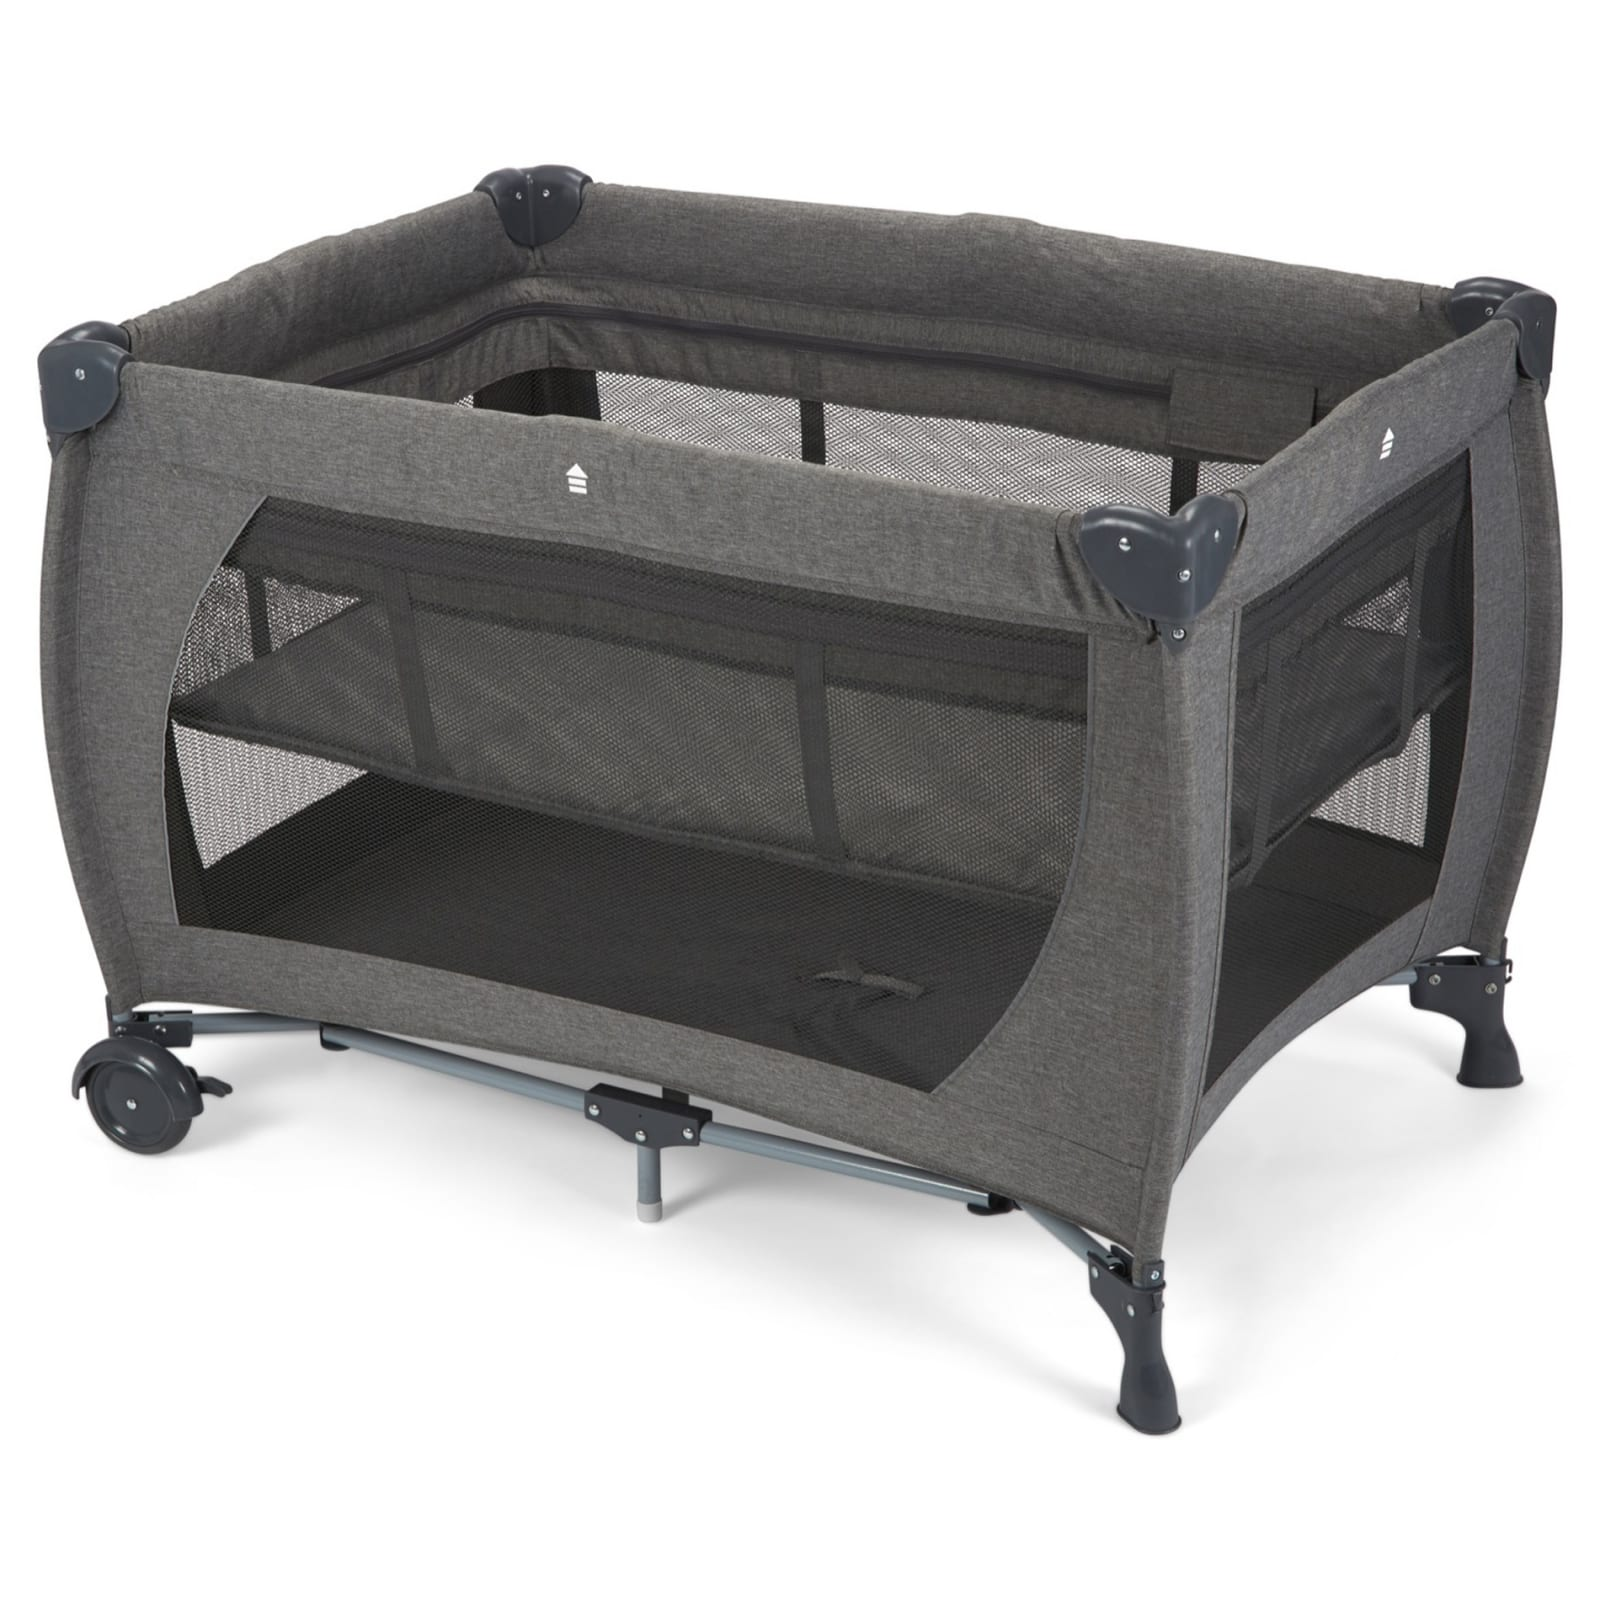 Beddy Byes Travel Cot product image